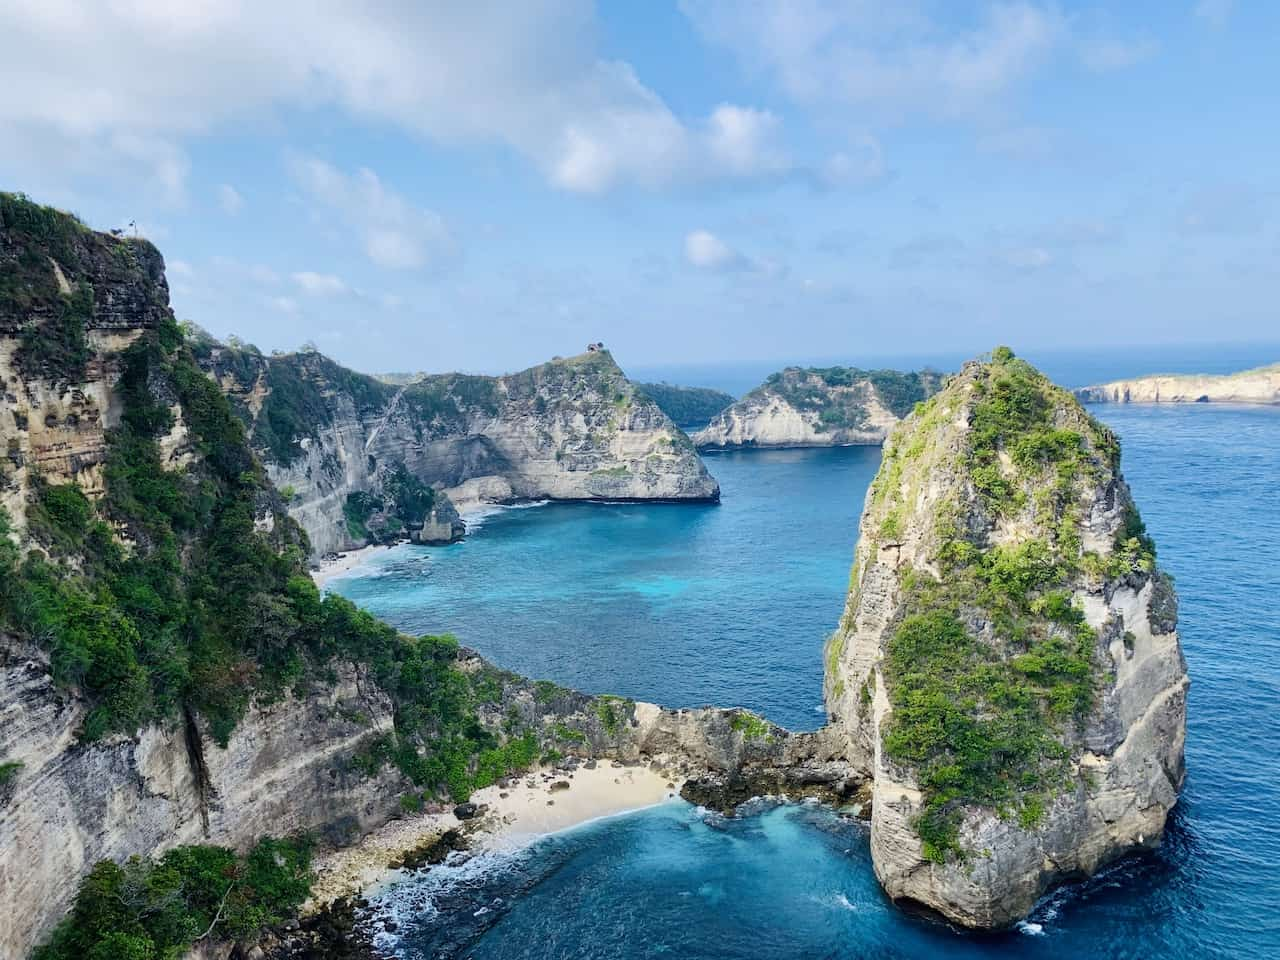 Nusa Penida Thousand Islands